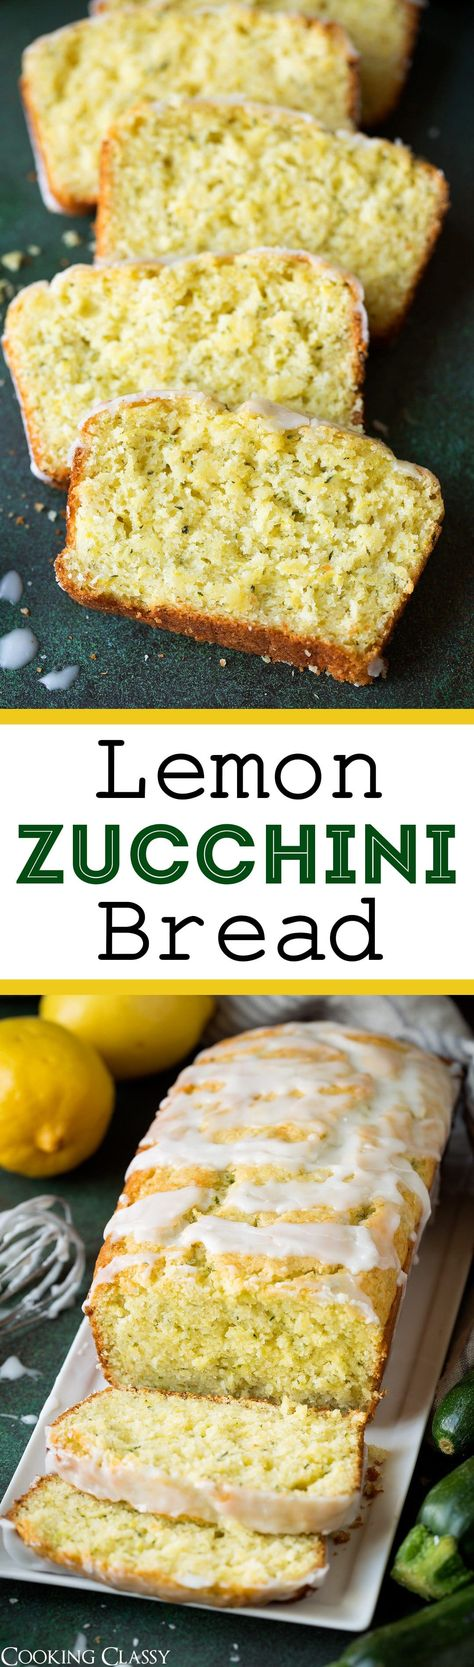 """Lemon Zucchini Bread - This is one of my new favorite ways to use up all that summer zucchini! It has such a bright sunny flavor and I can't get enough of that sweet glaze! You don't taste the zucchini it just adds an incredible moisture to the cake and adds some little green """"sprinkles."""" Everyone will love this bread! #lemon #zucchinibread #bread #dessert #summer #zucchini #recipe"""